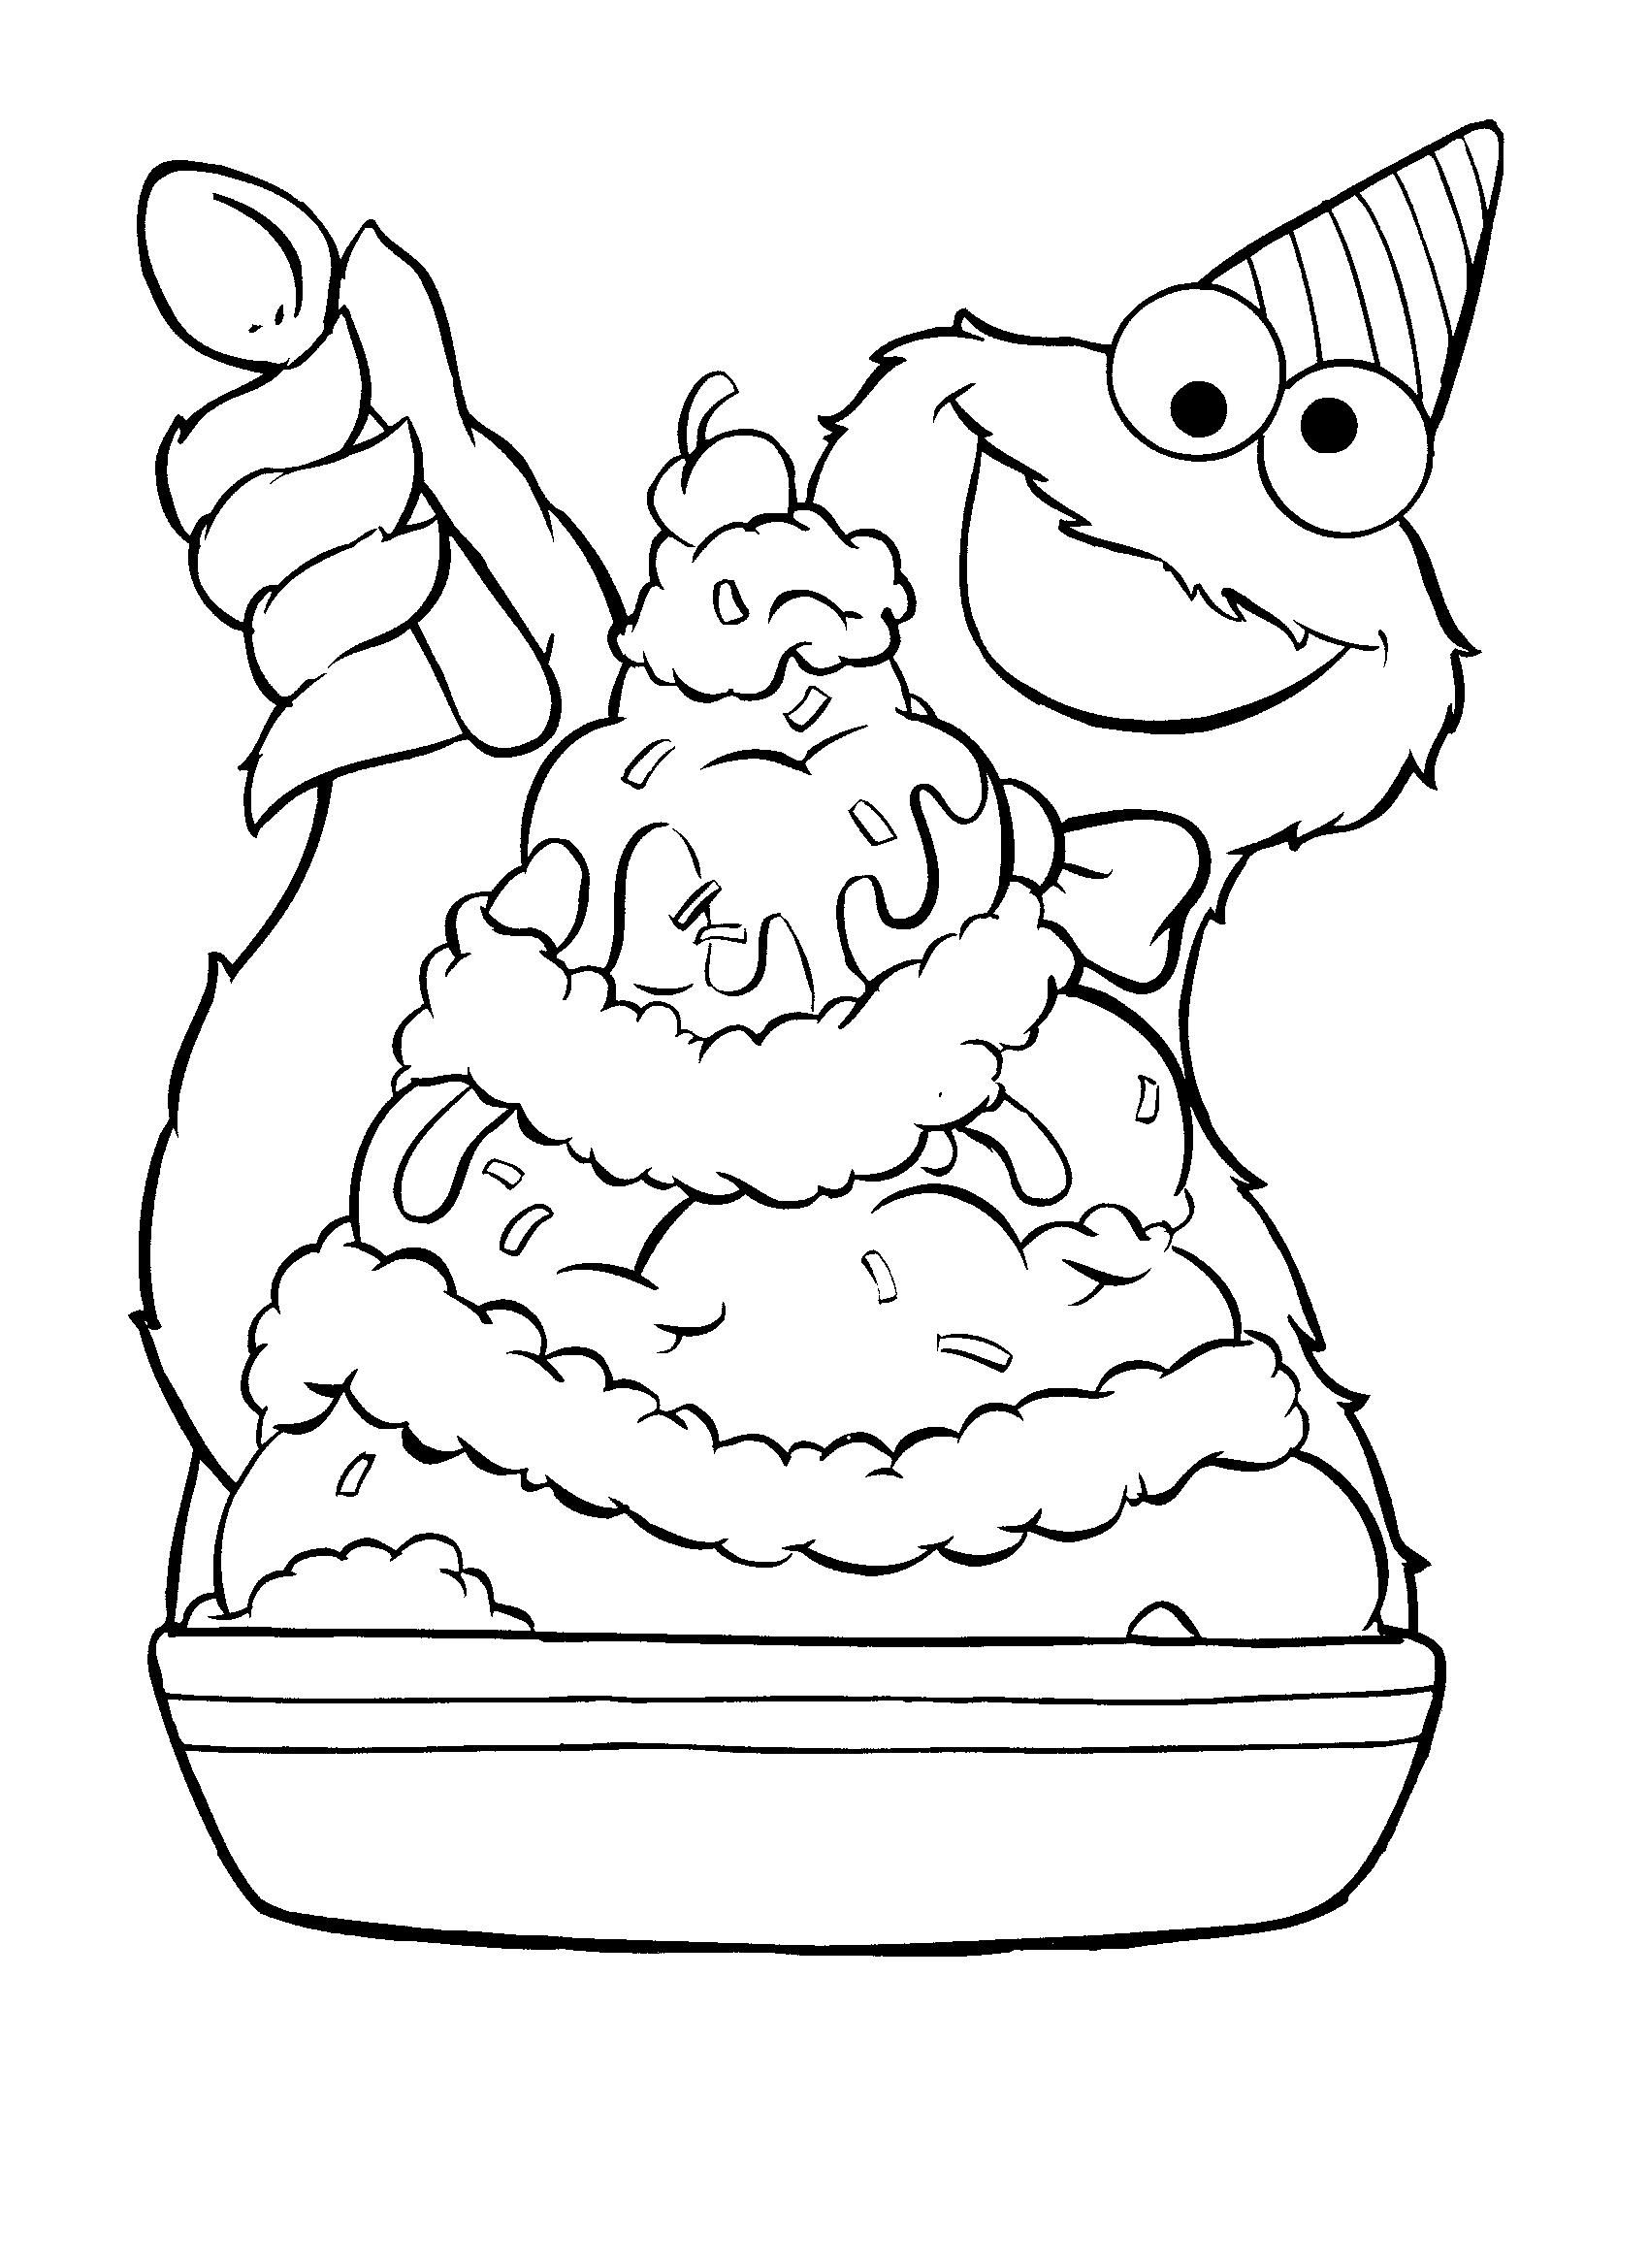 Cookie Monster Ice Cream Sundae Coloring Pages Coloring Pages